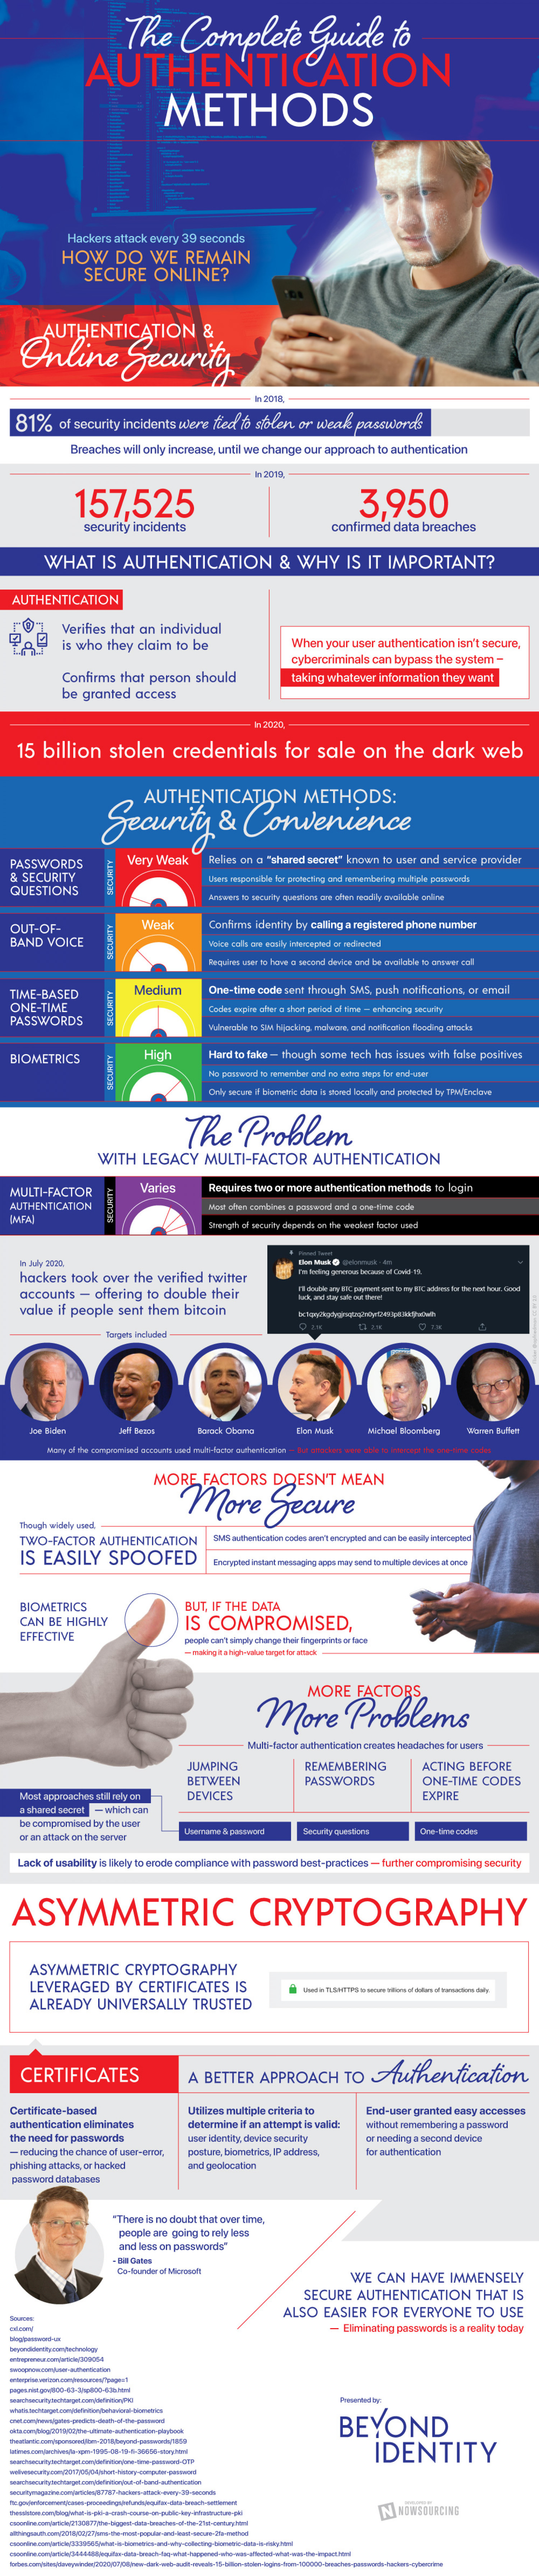 How Do We Remain Secure Online? Infographic